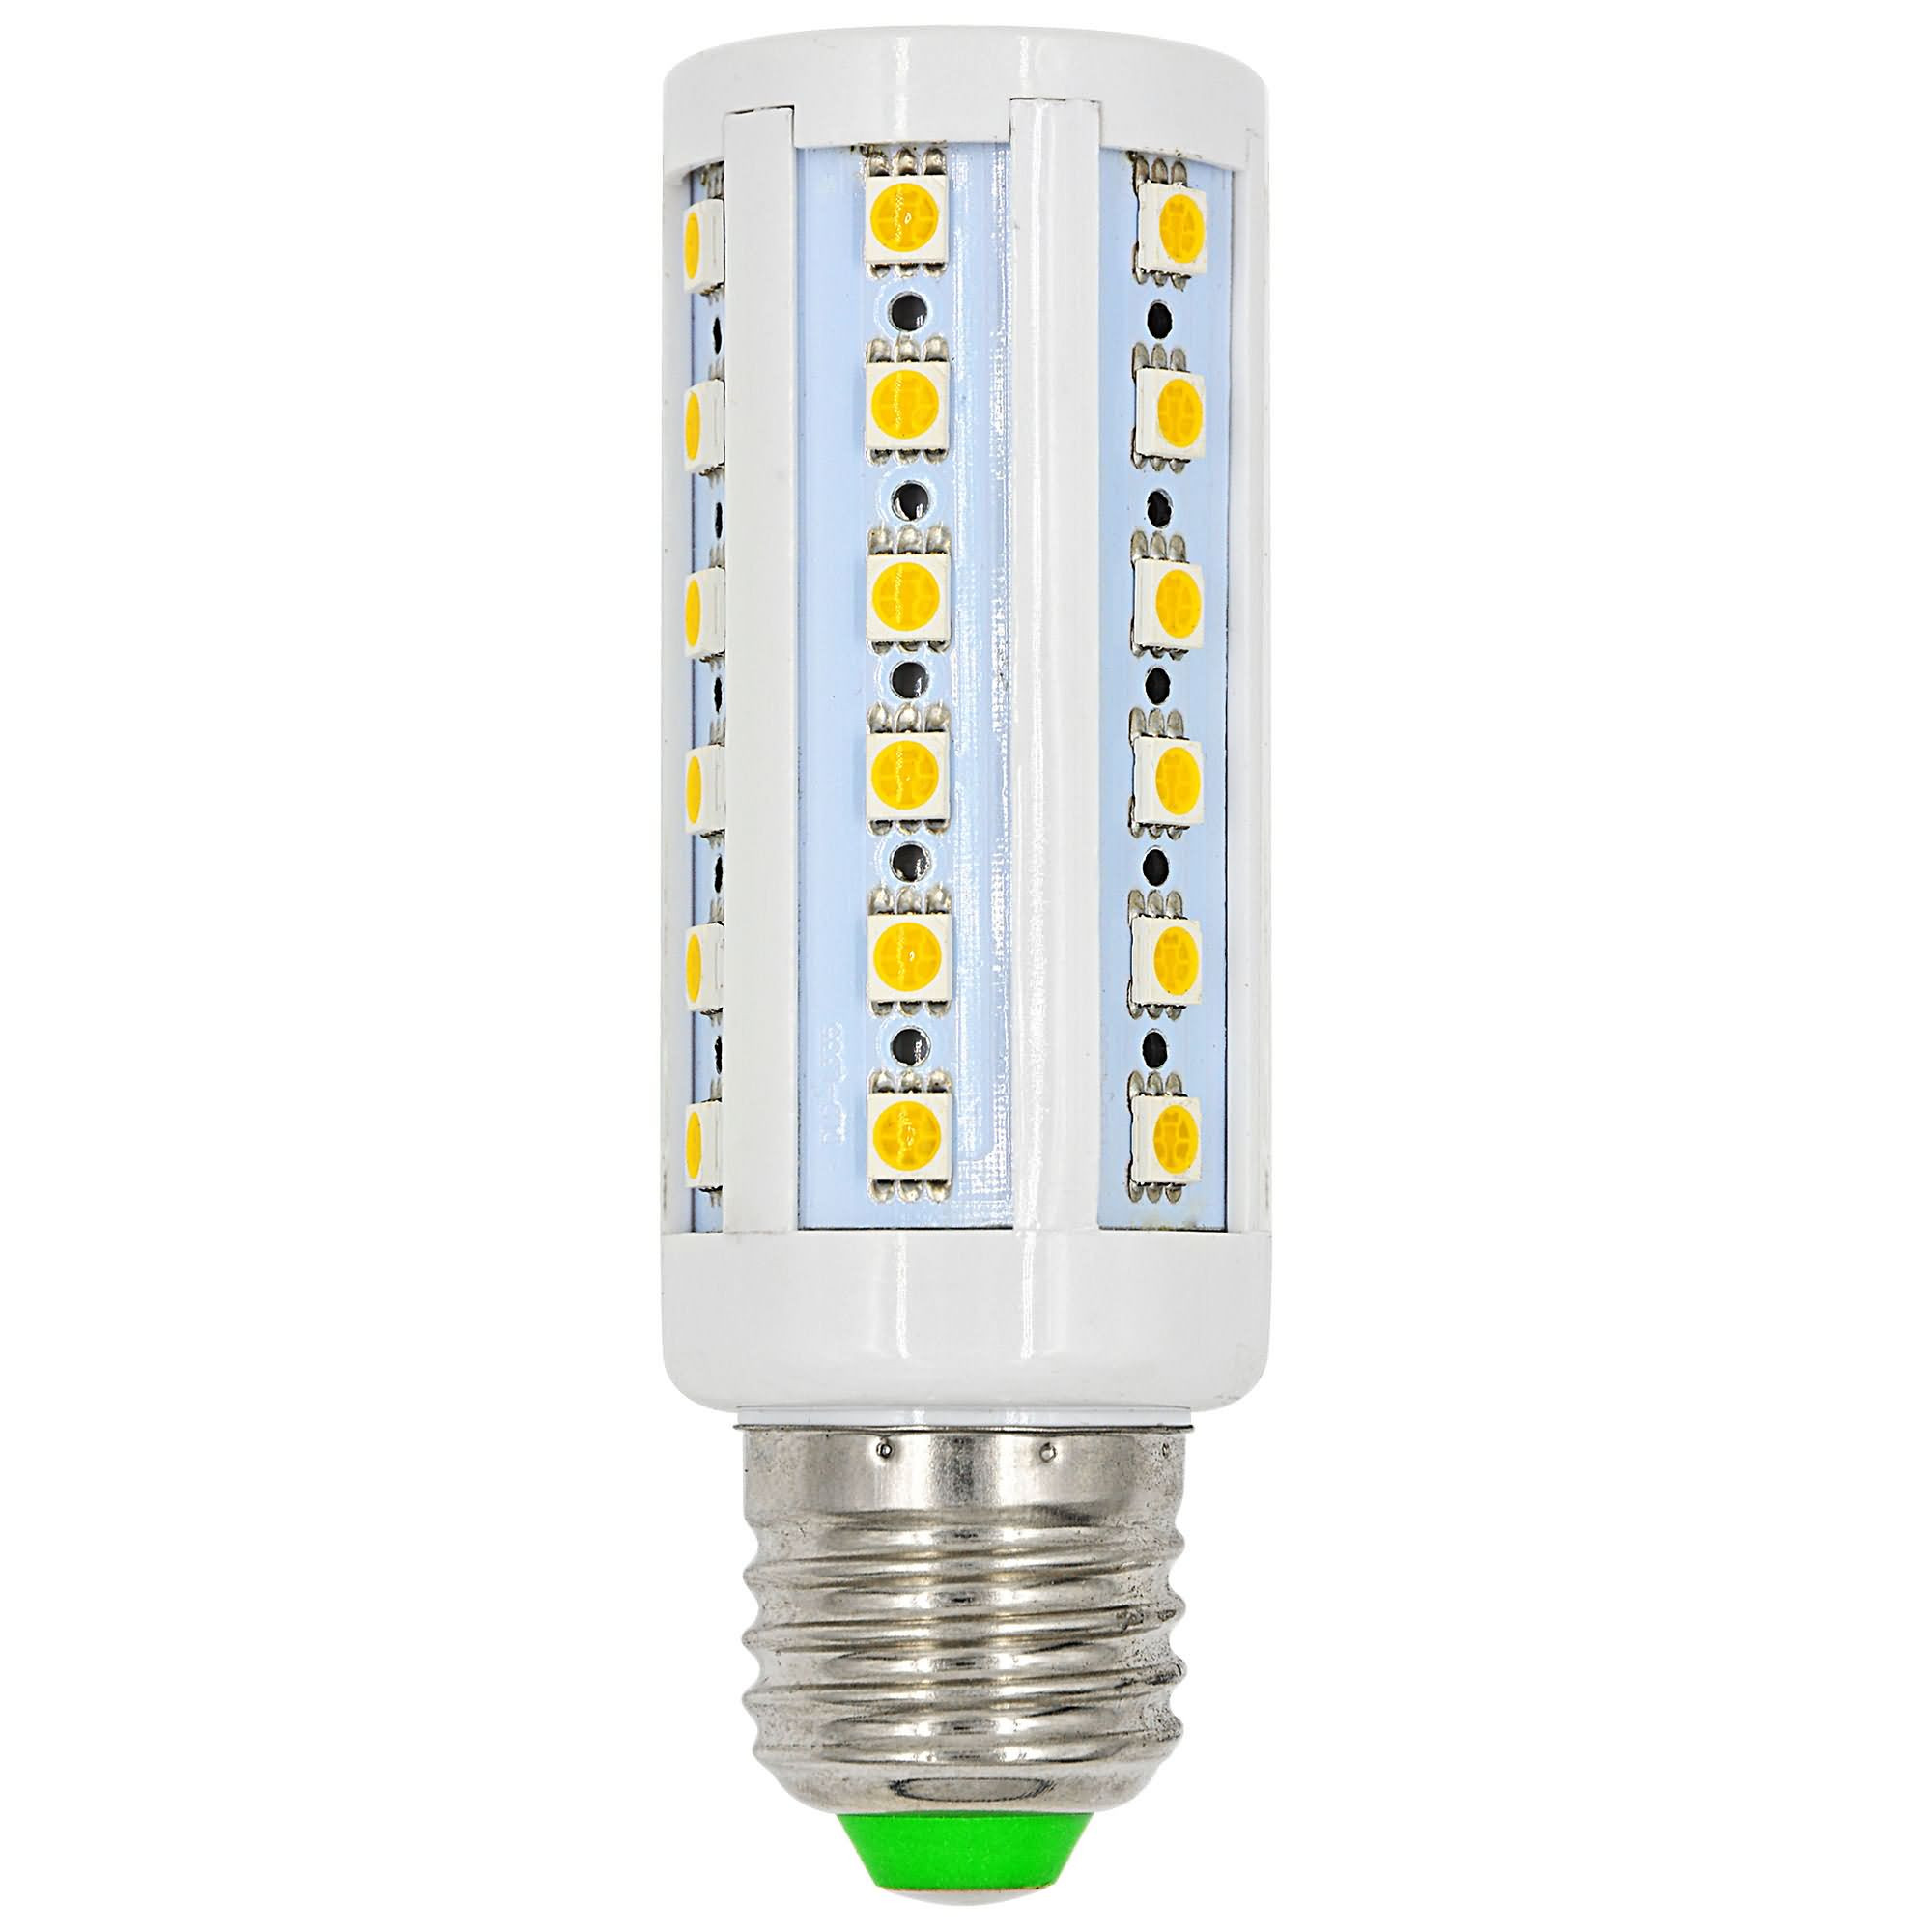 MENGS® E27 7W LED Corn Light 42x 5050 SMD LEDs LED Bulb In Cool White Energy-Saving Lamp